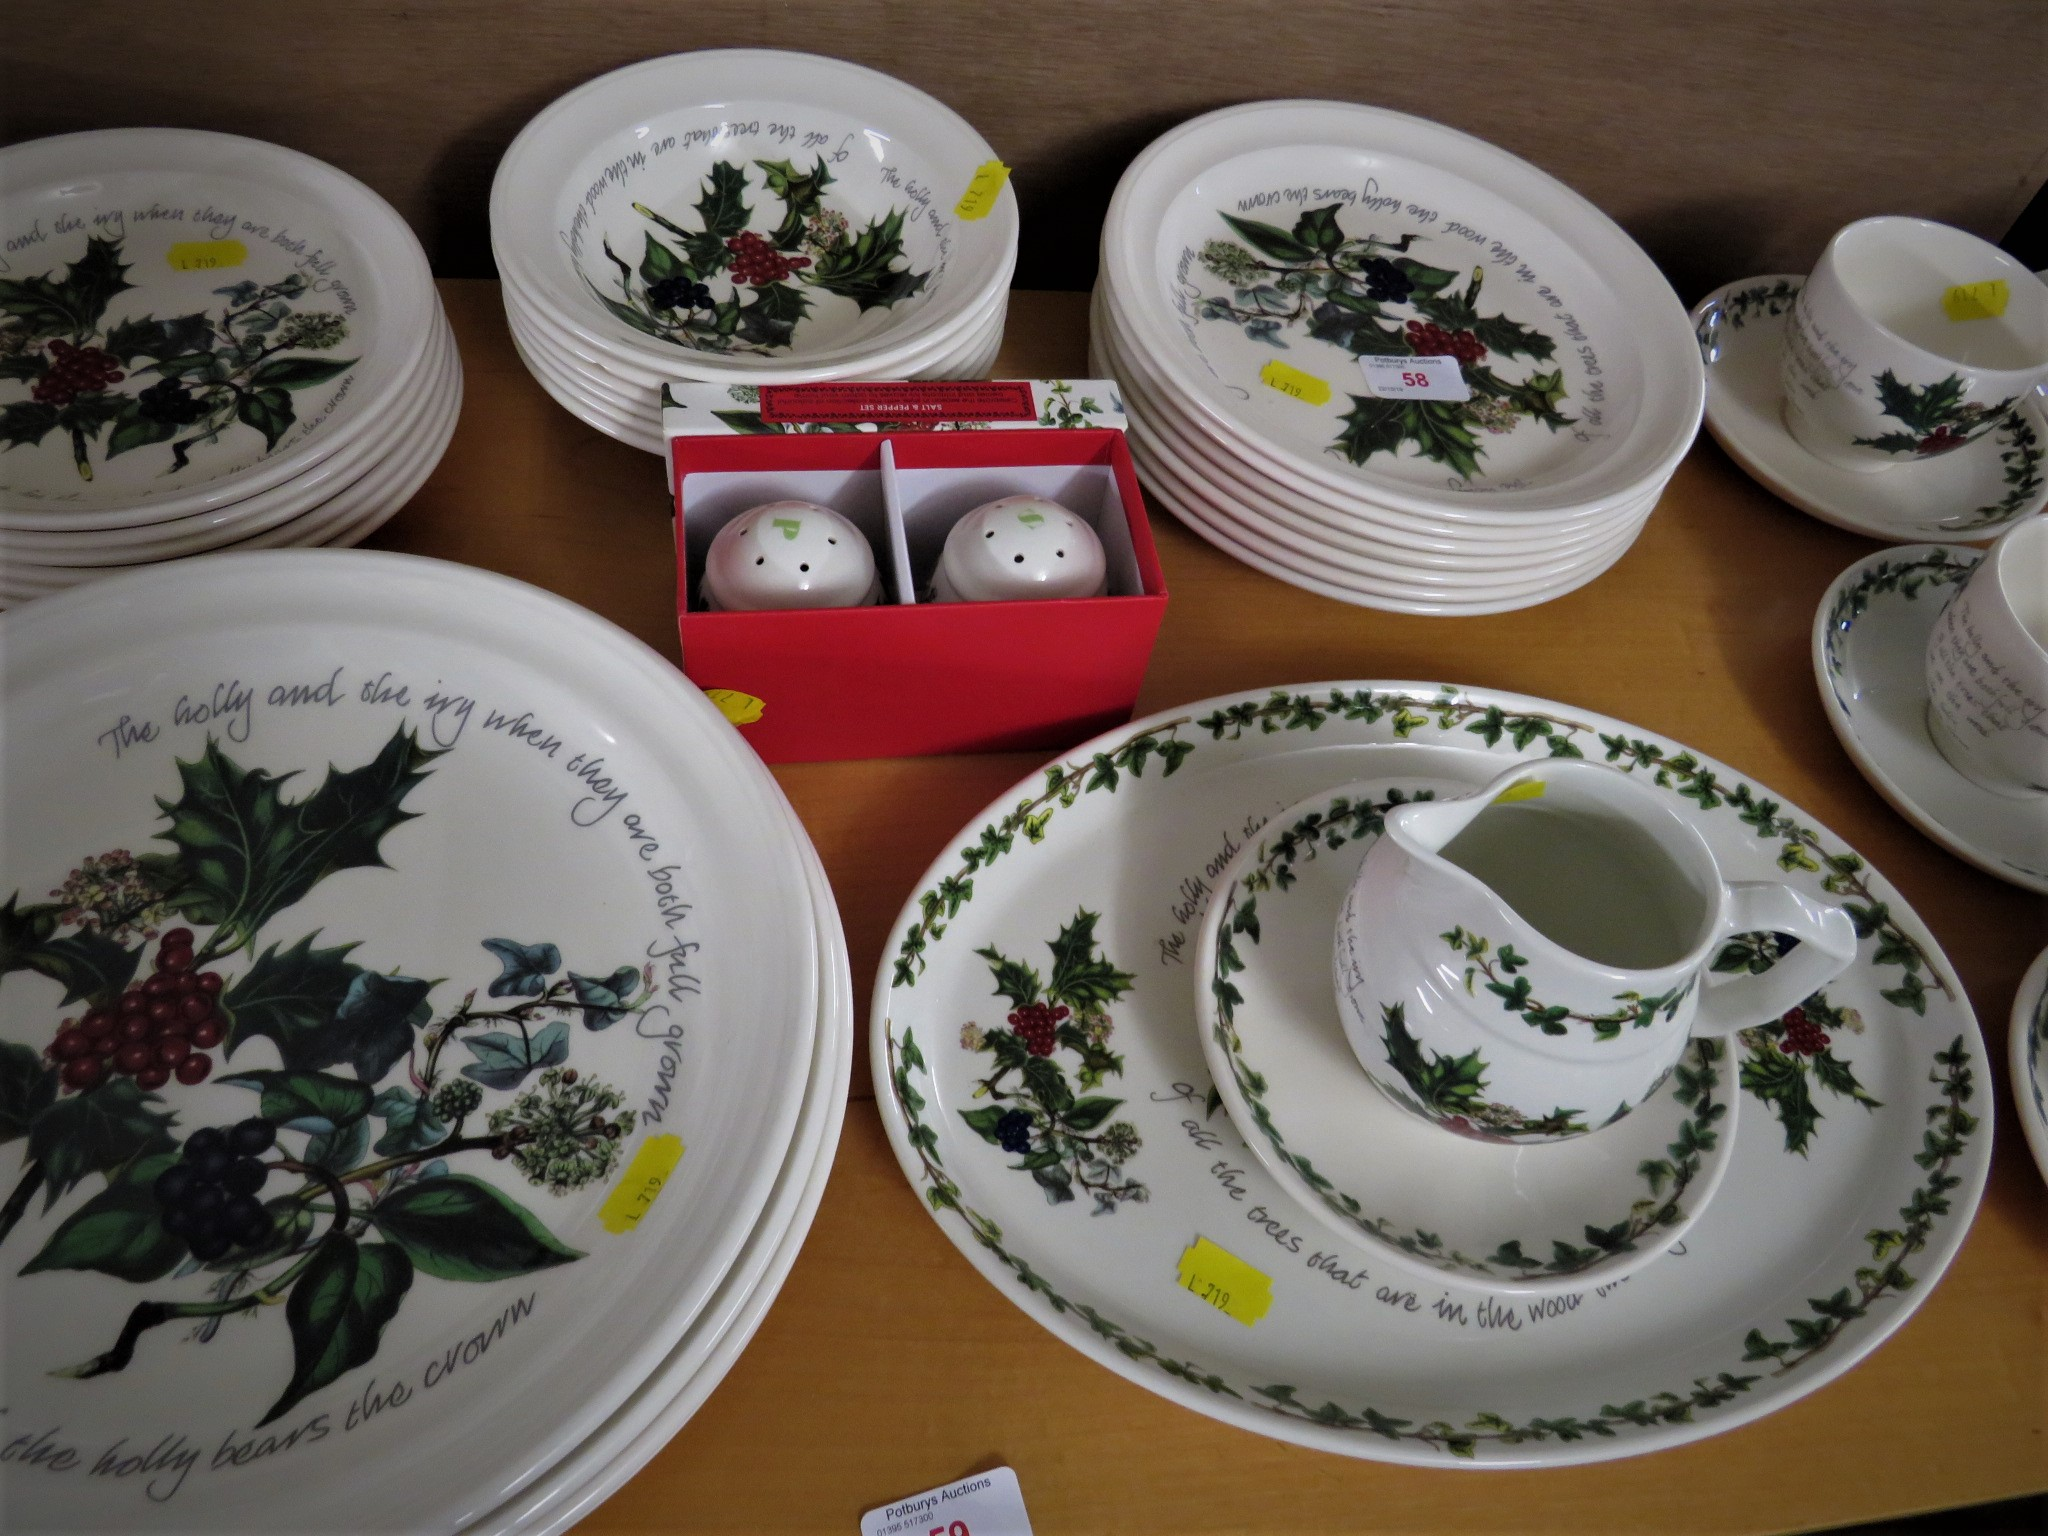 Lot 58 - PORTMEIRION 'THE HOLLY AND THE IVY' DINNER AND TEAWARE - SIX CUPS AND SAUCERS, SIX TEA PLATES, SIX